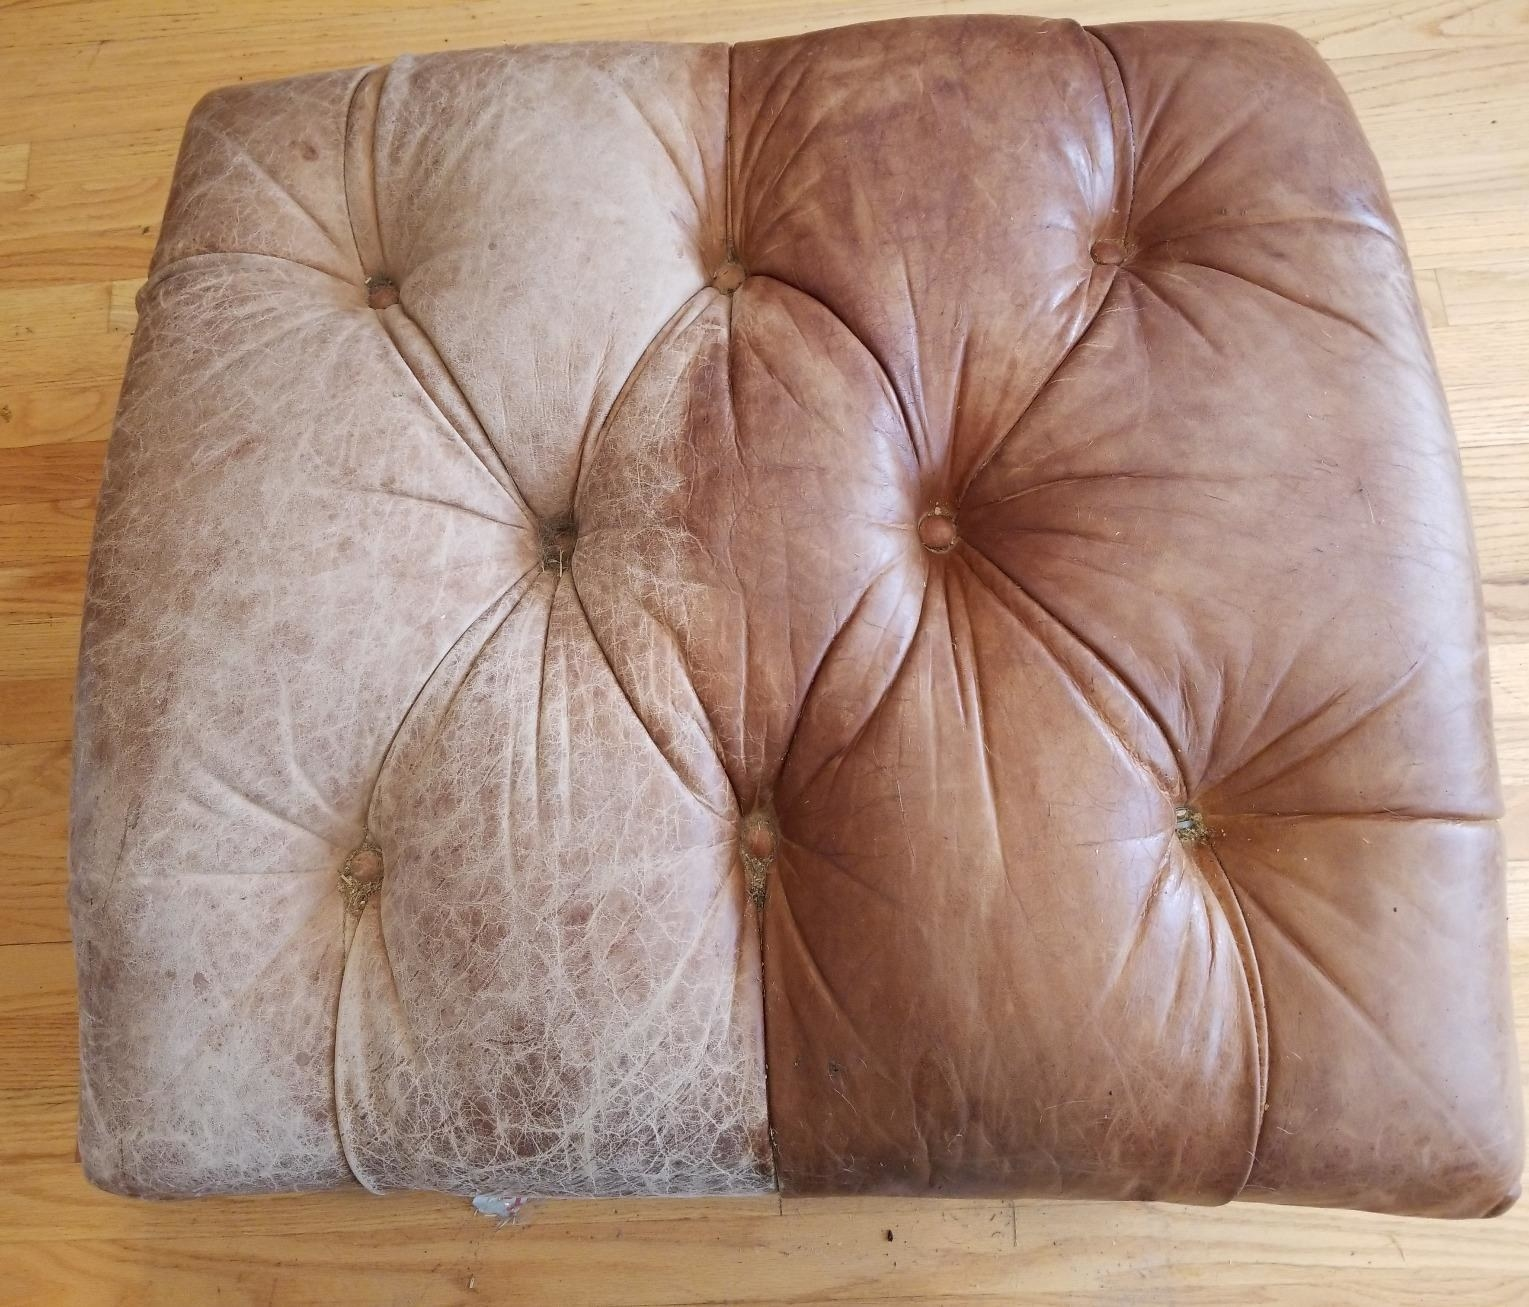 A reviewer's old leather ottoman, half faded almost grey, and half conditioned to a warm brown and looking almost new